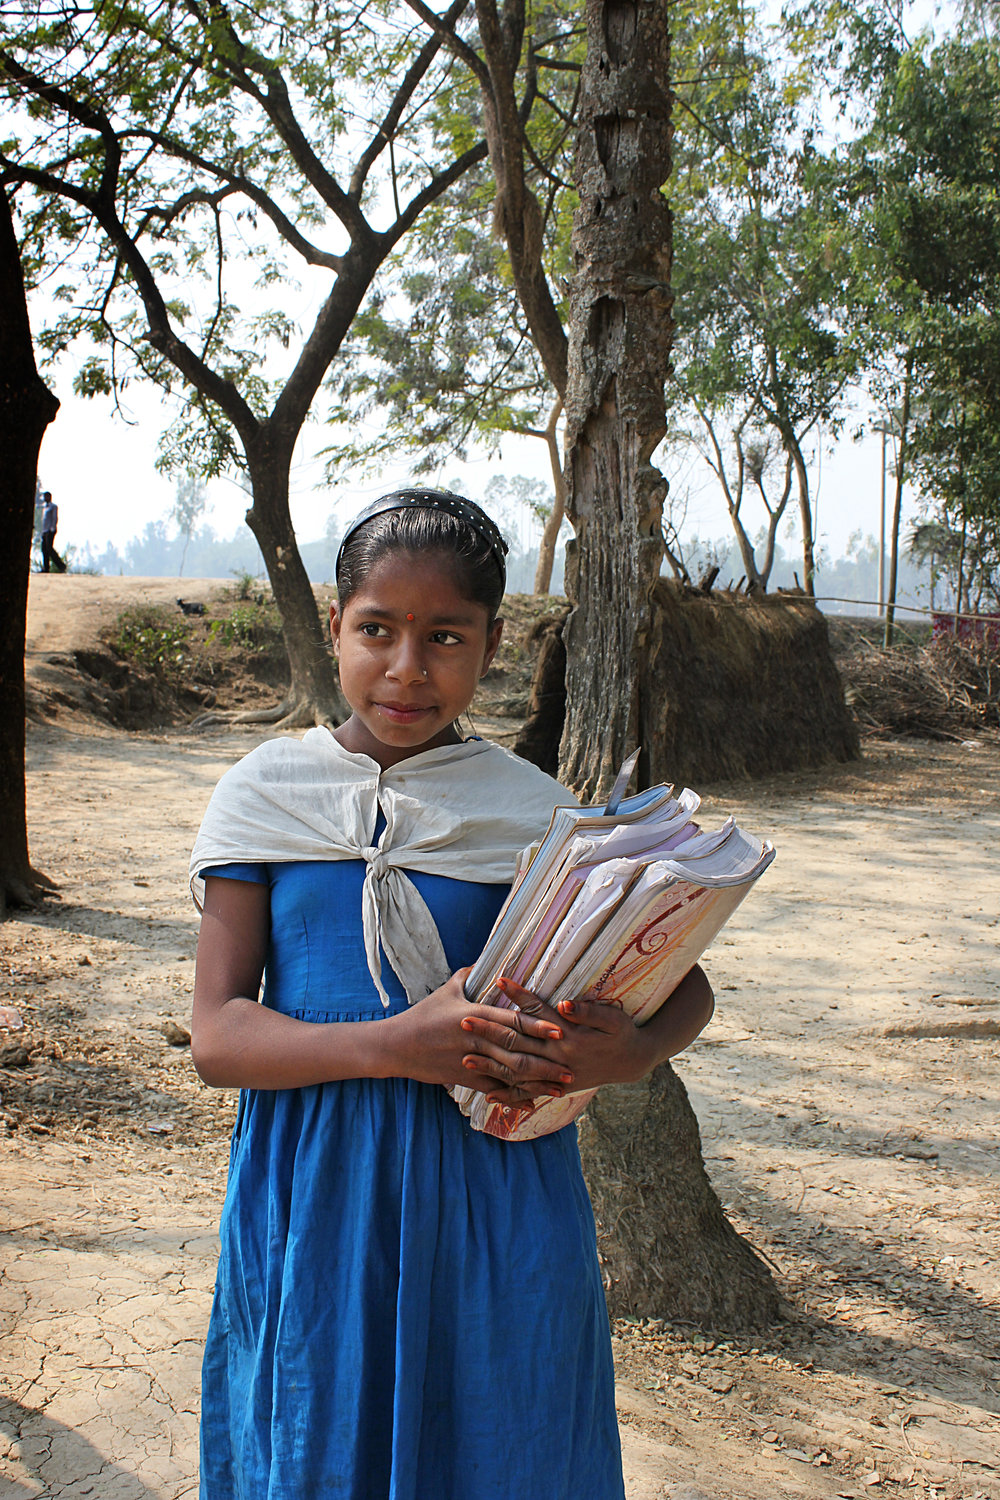 A young girl holds onto her books